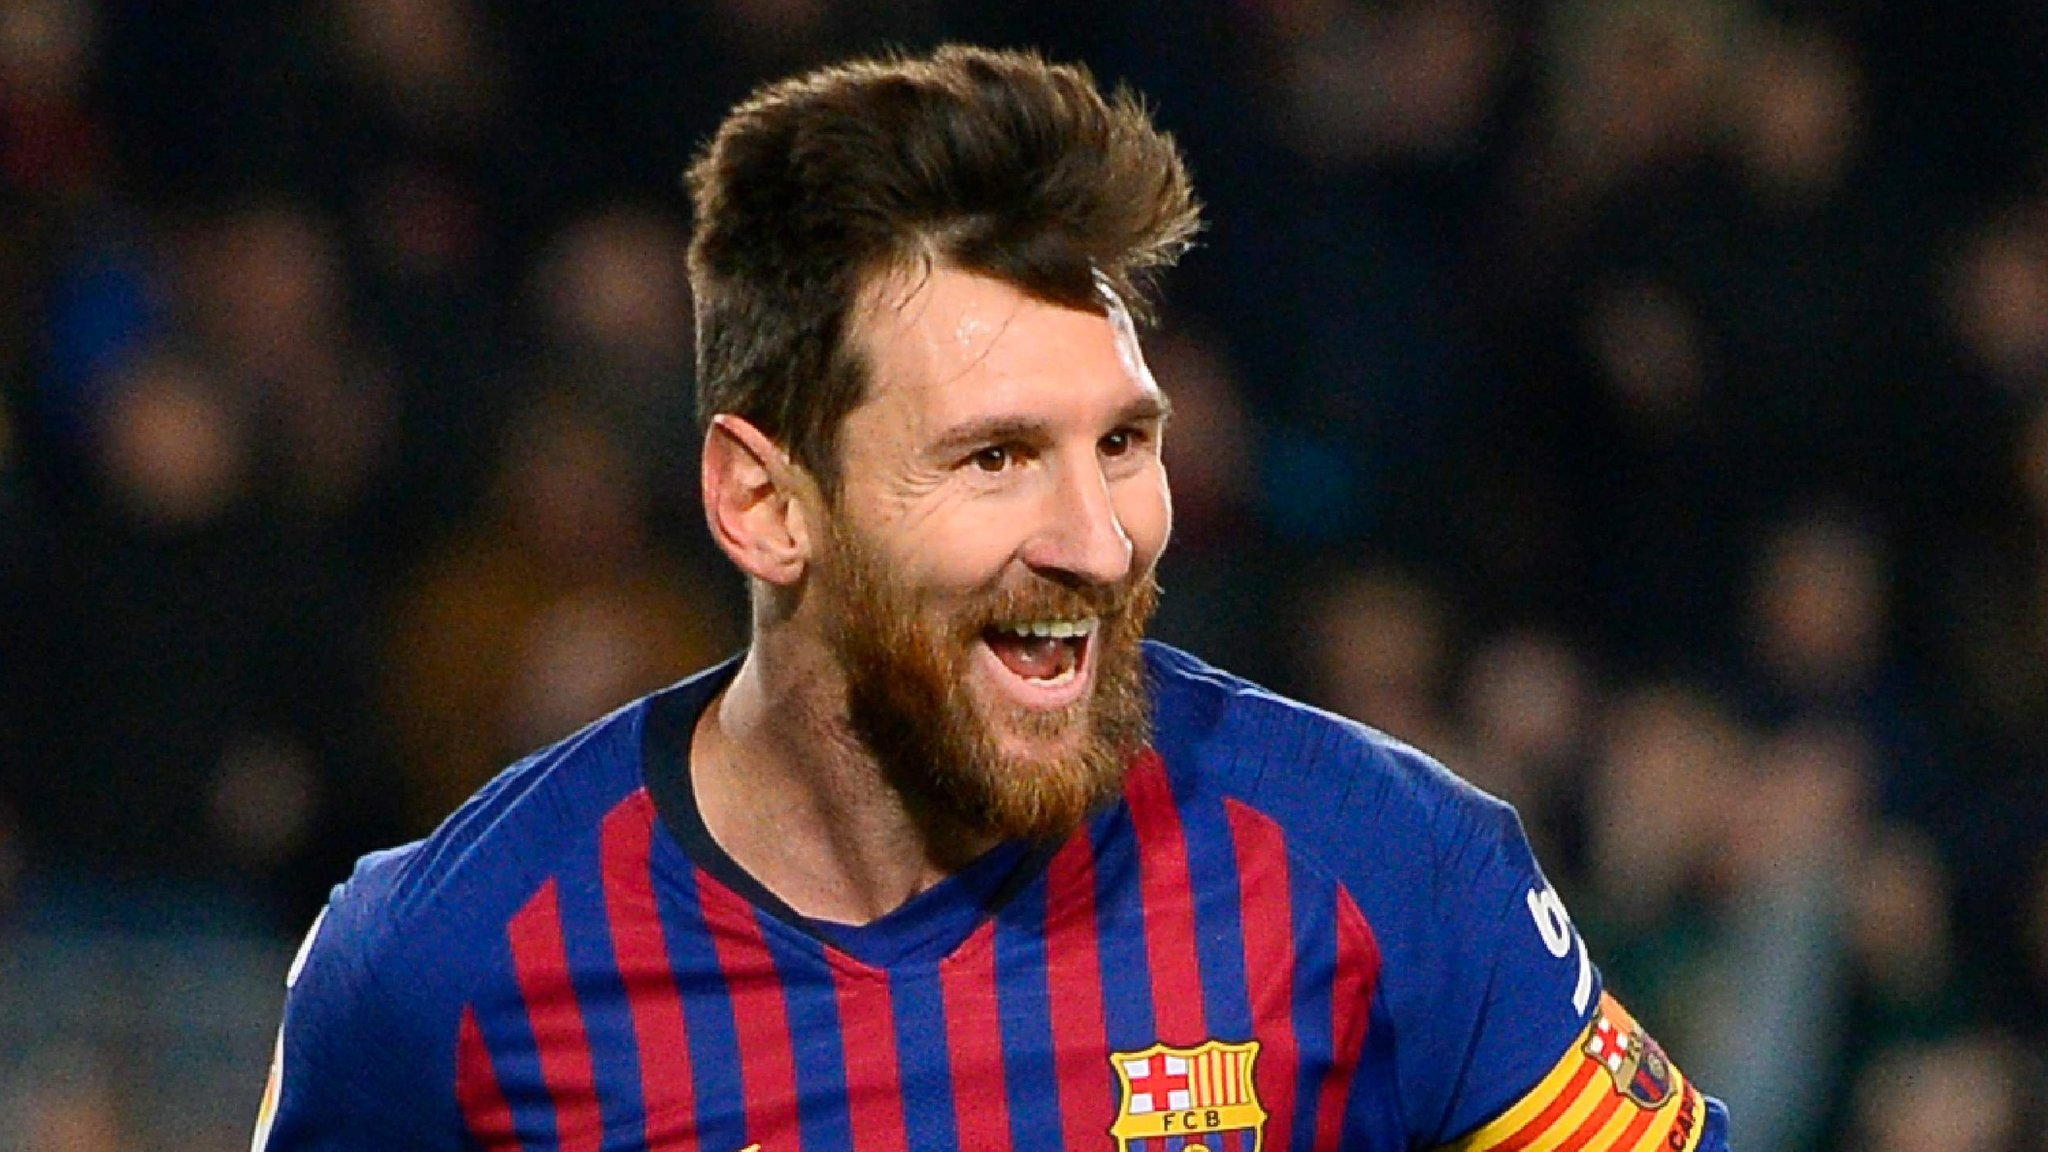 Barcelona 3-1 Leganes: Lionel Messi off the bench to inspire victory